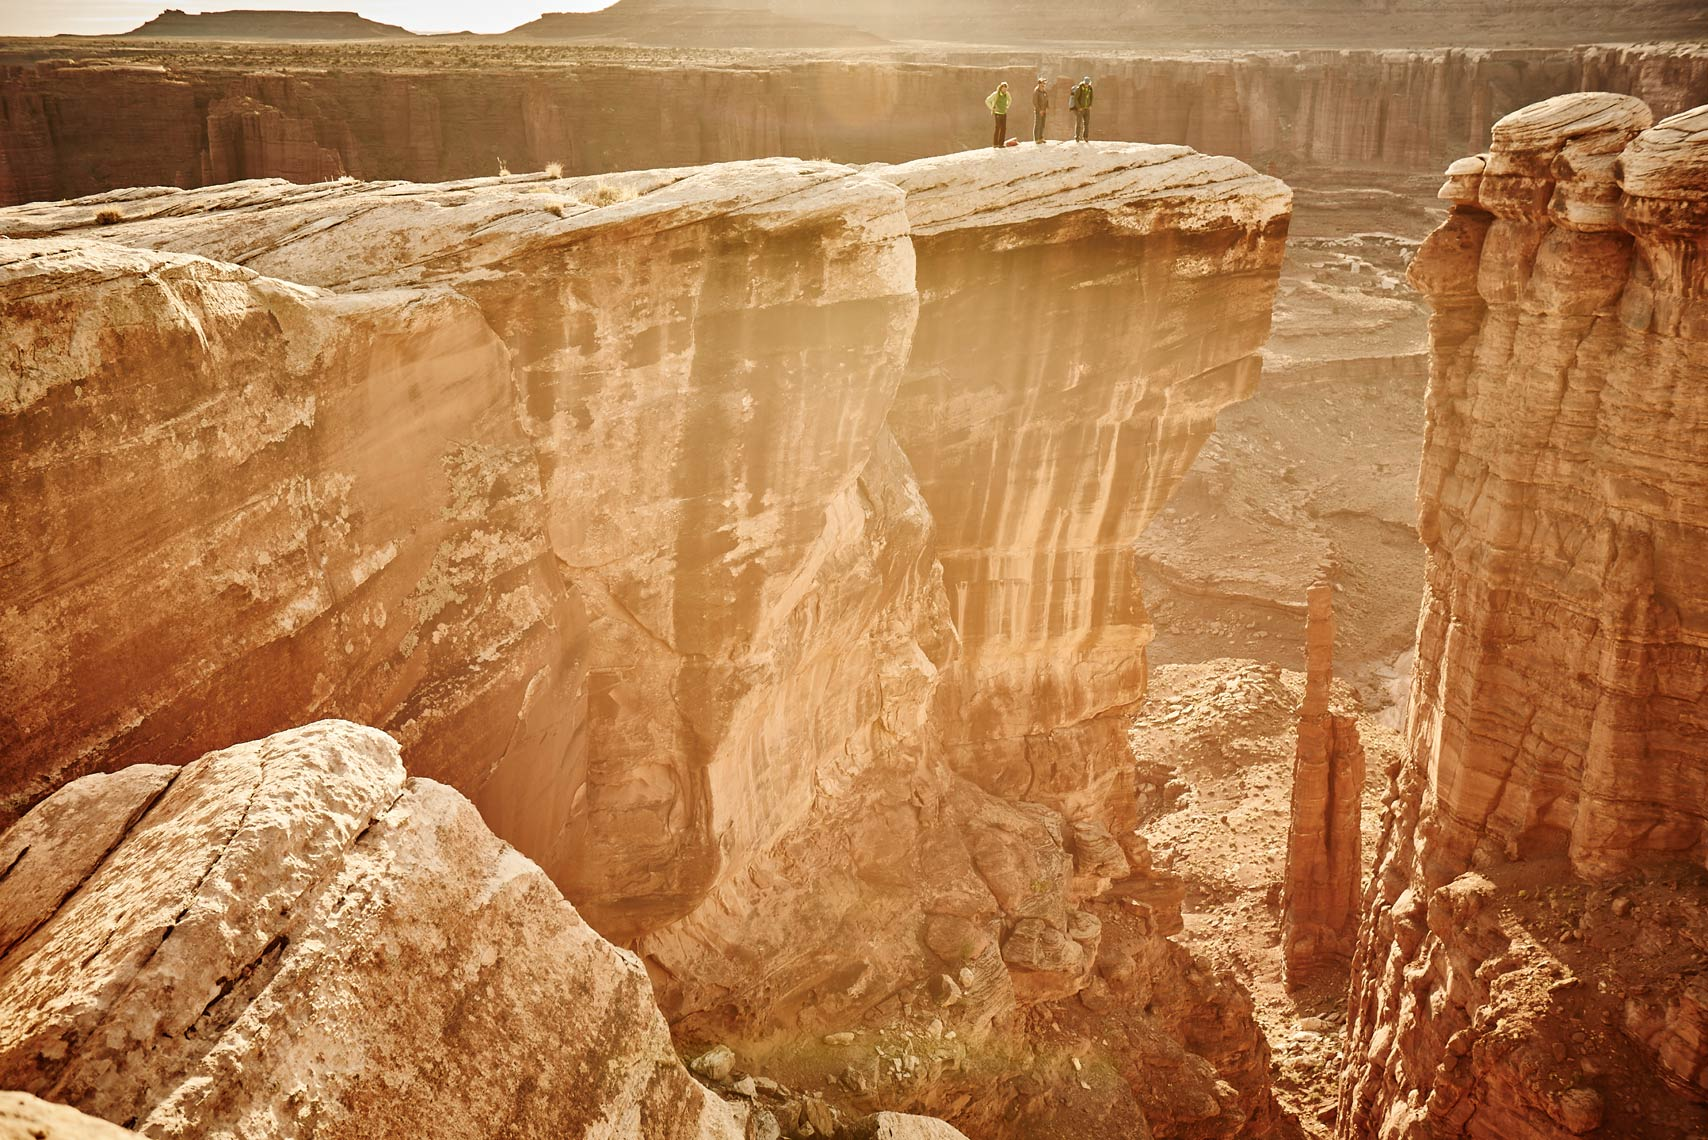 RD_141027_MOAB_5532